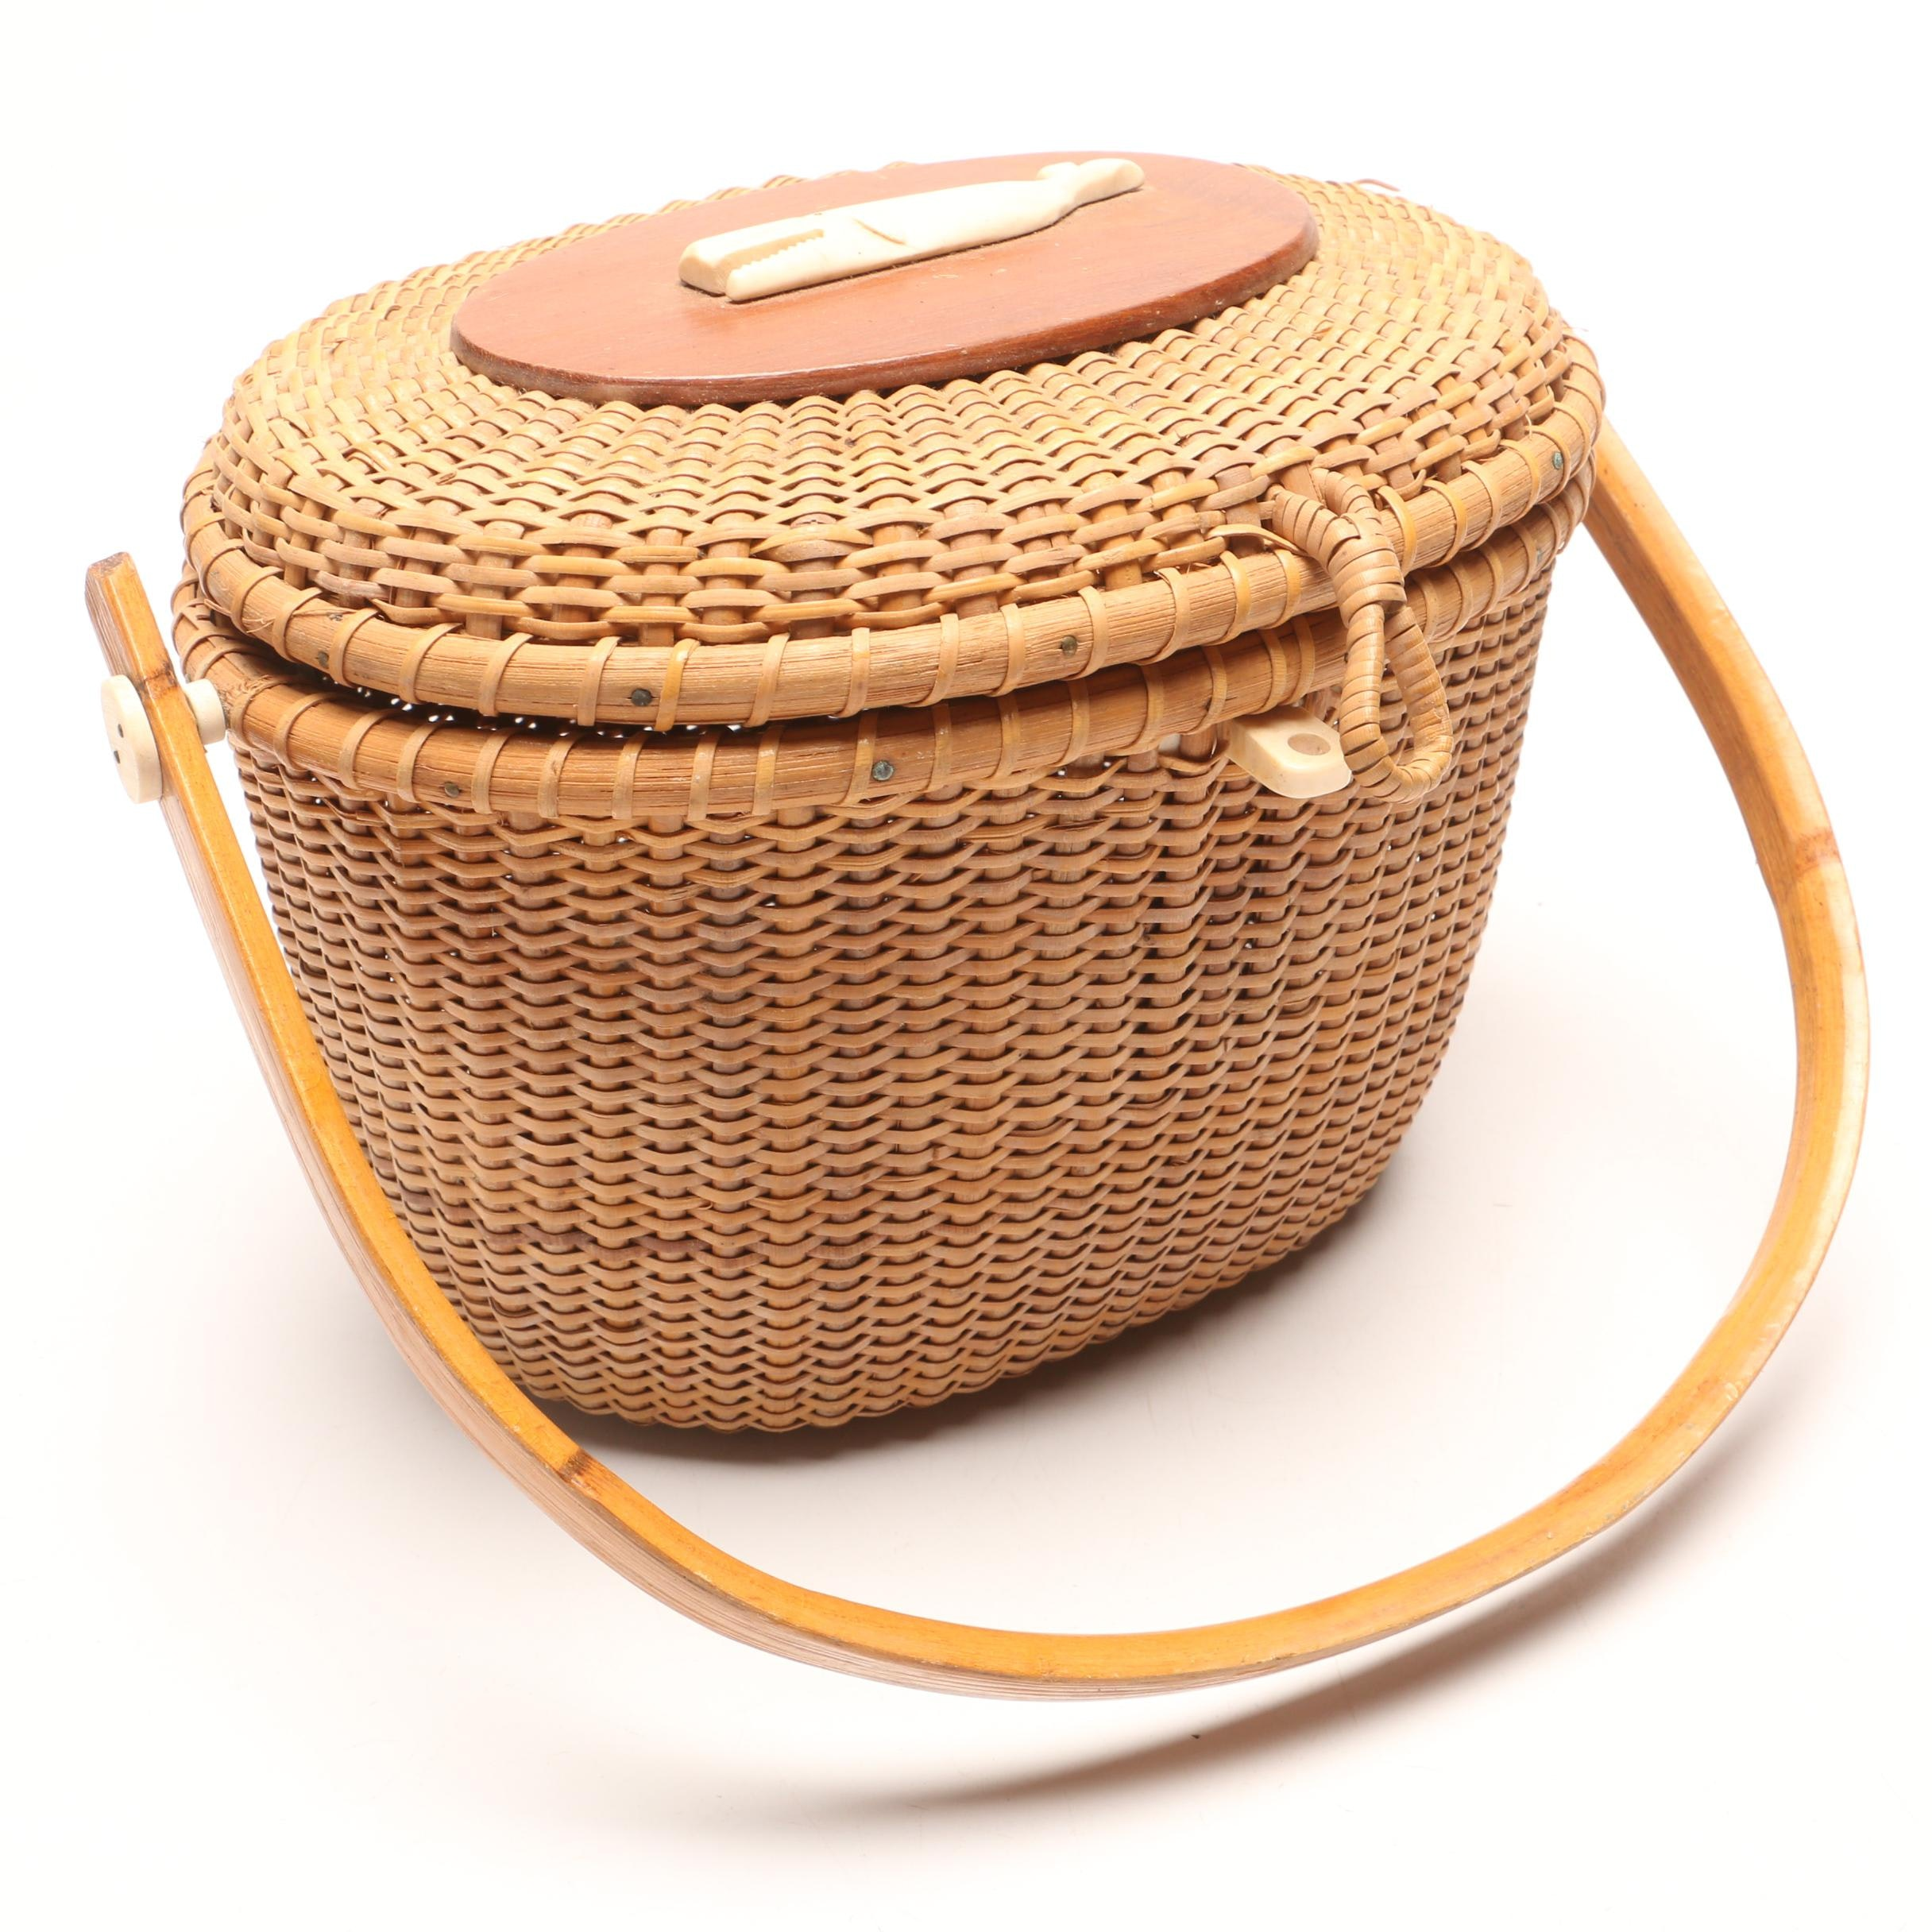 Nantucket Style Woven Wicker and Wood Basket Purse